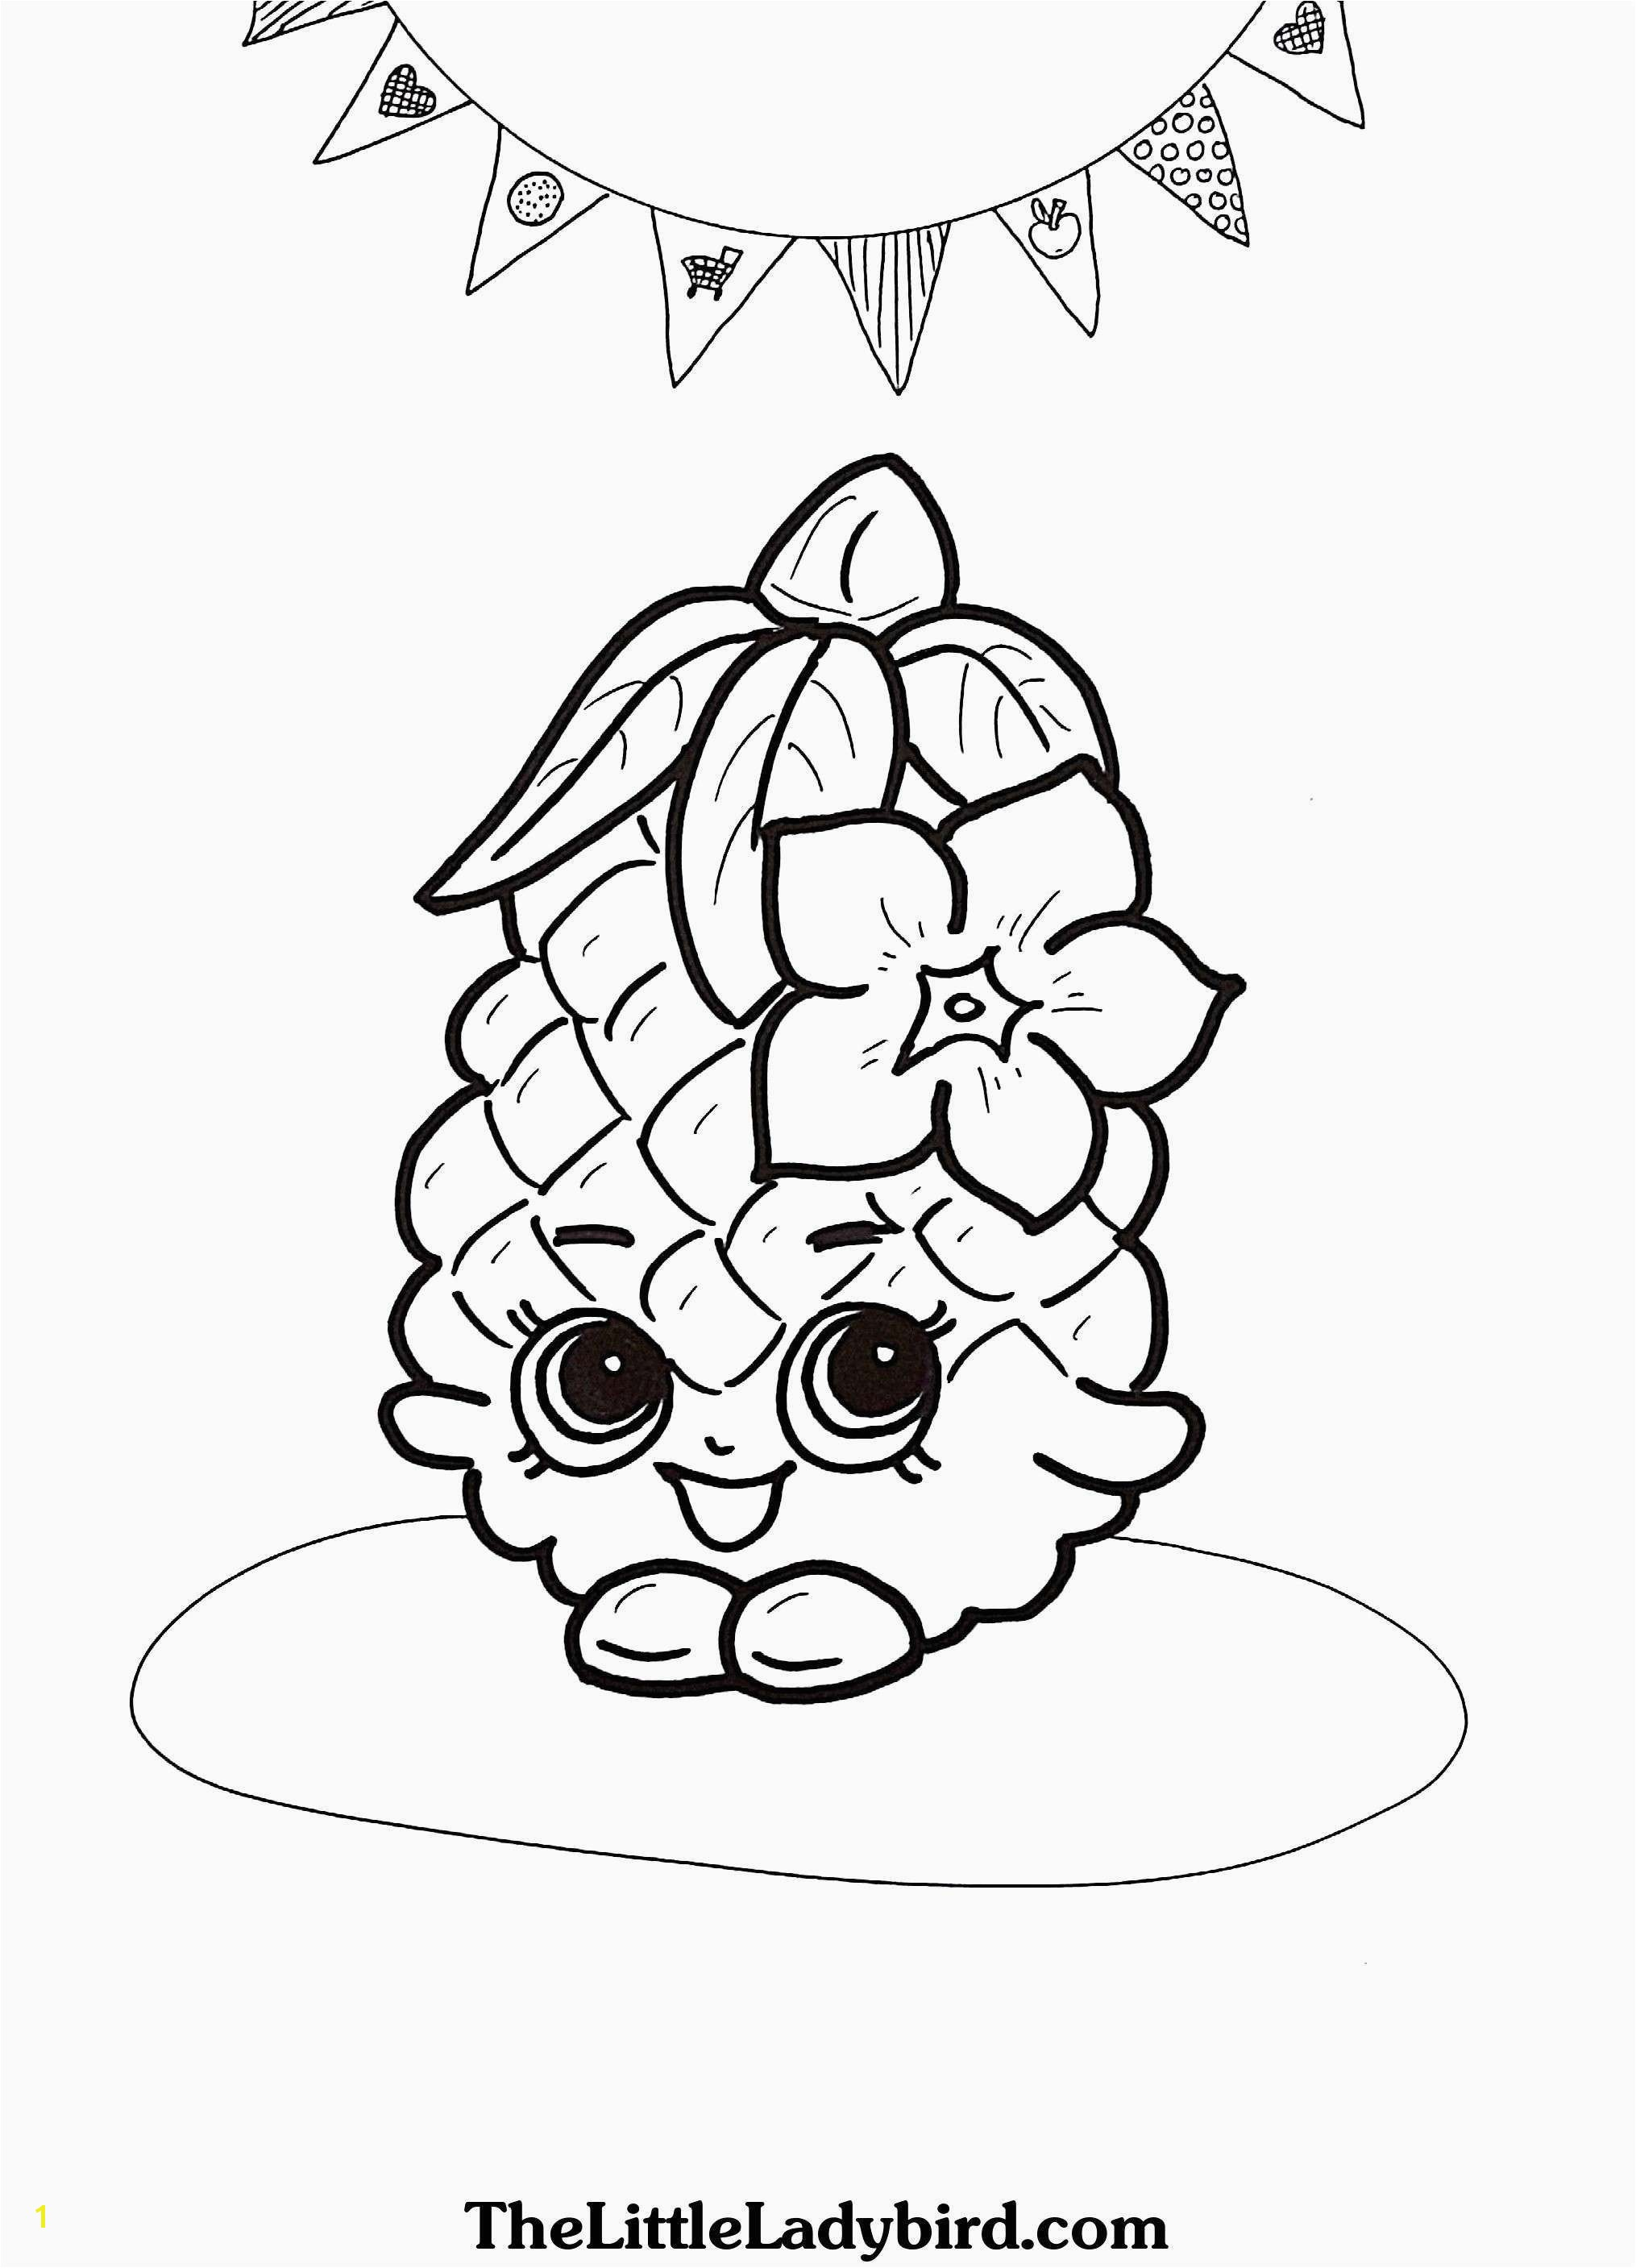 Free Dora Christmas Coloring Pages Free Dora Christmas Coloring Pages